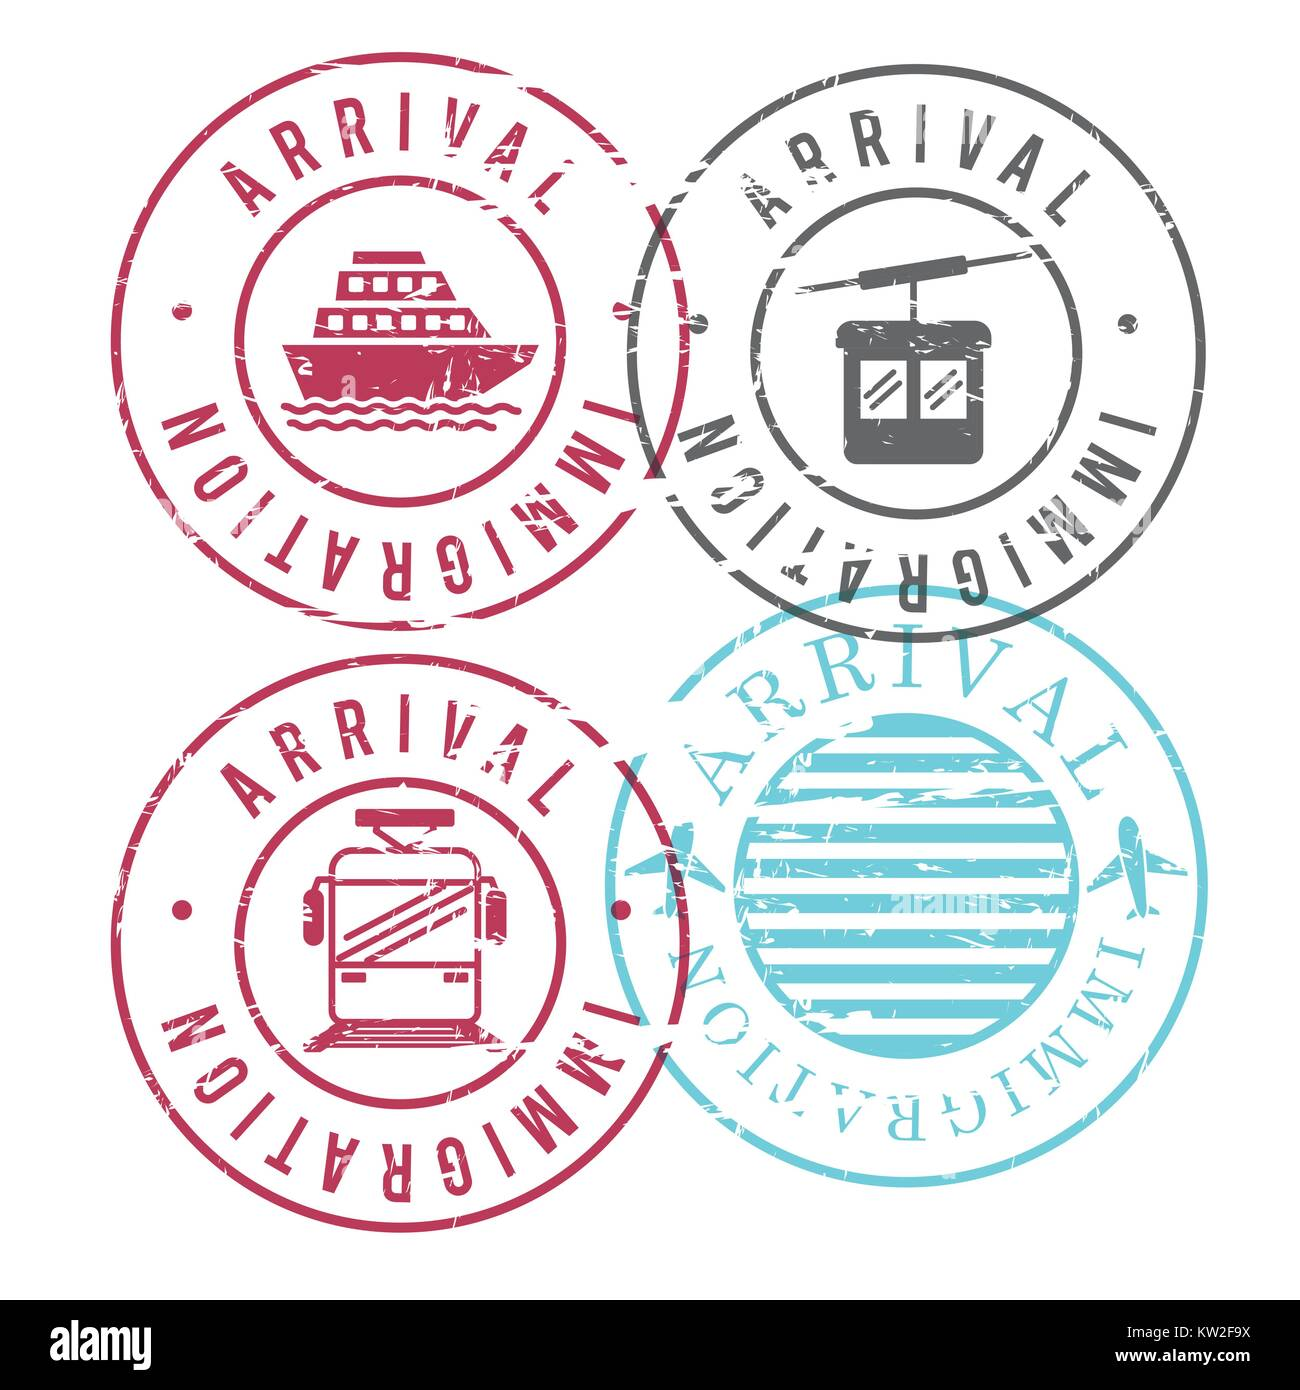 Train stamps stock photos train stamps stock images alamy immigration arrival circular stamps of ship and cableway and train and airplane in colorful silhouette buycottarizona